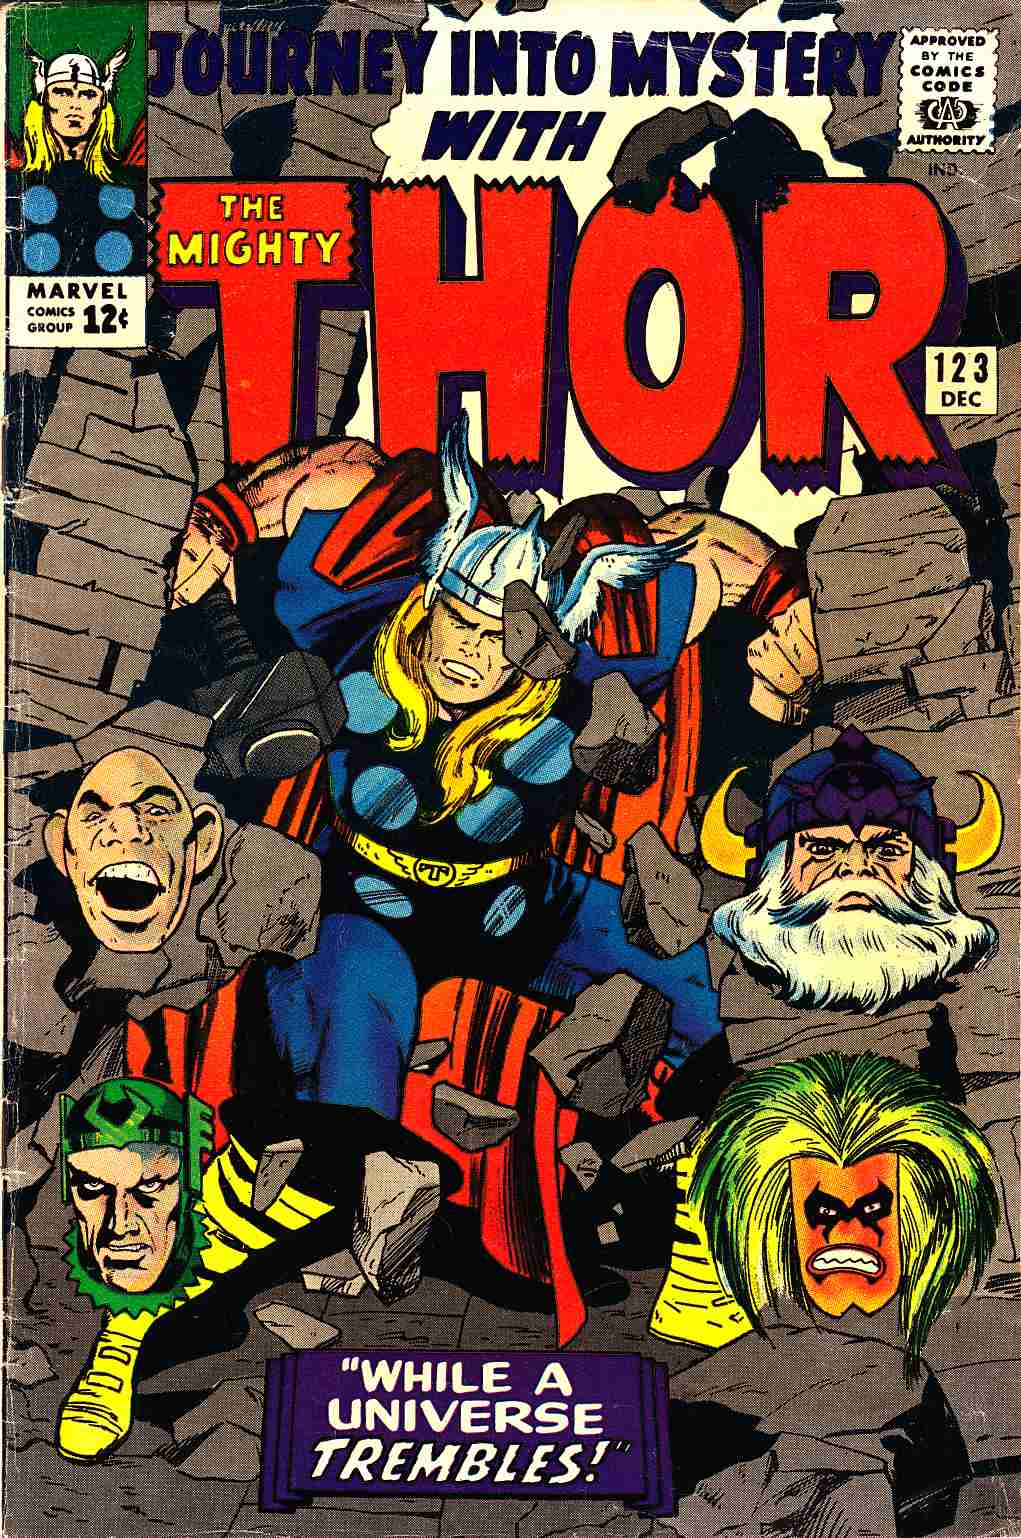 Journey Into Mystery Thor #123 Very Good (4.0) [Marvel Comic] THUMBNAIL